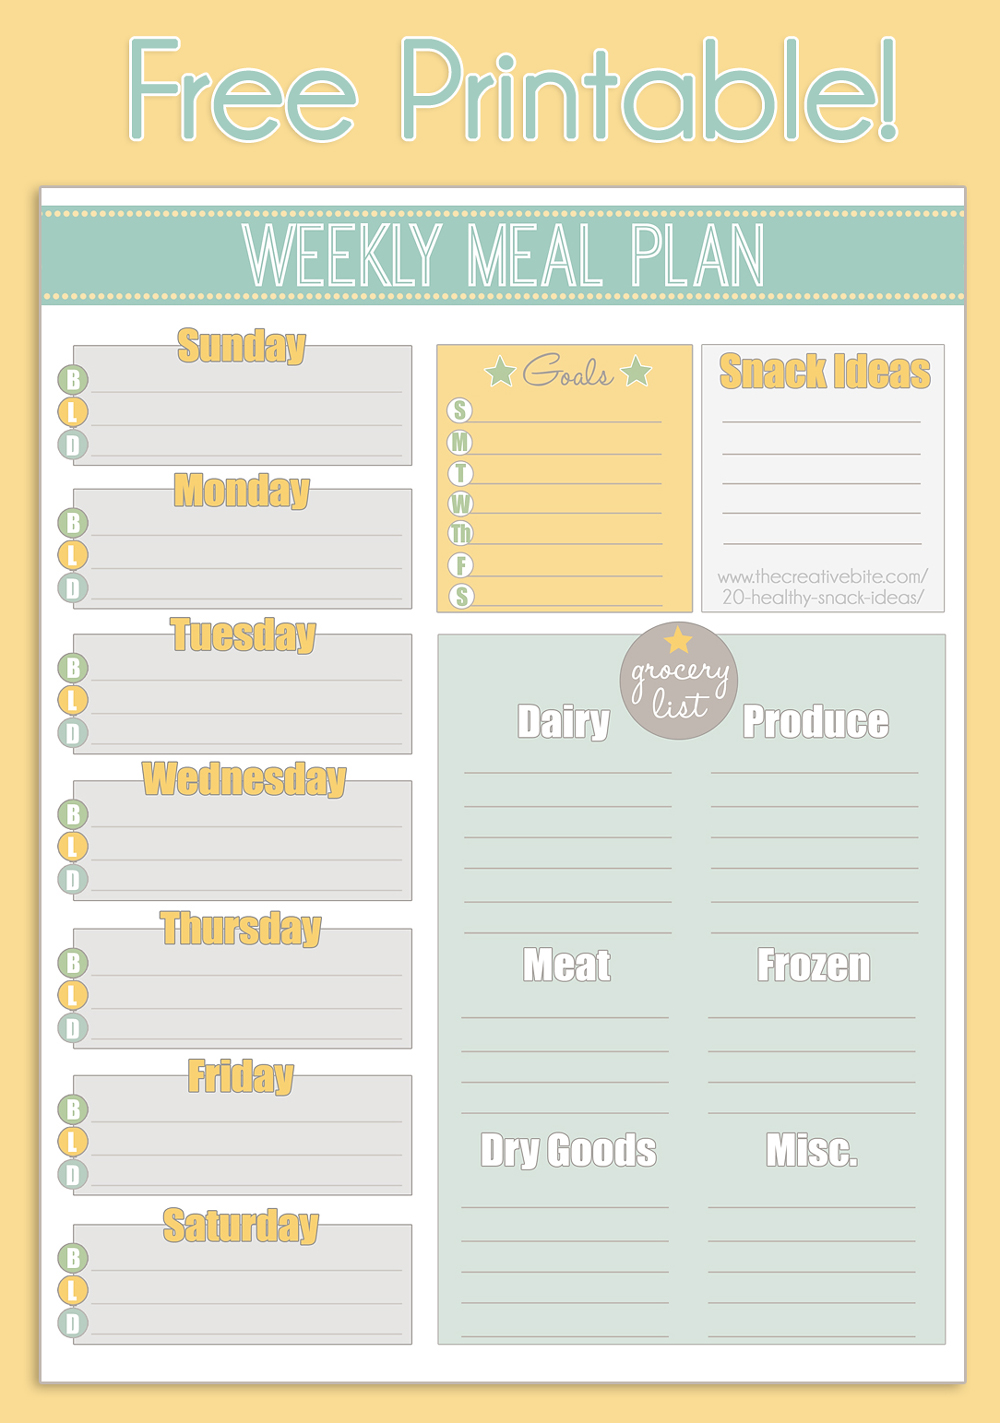 Free Printable Weekly Meal Planner + Calendar